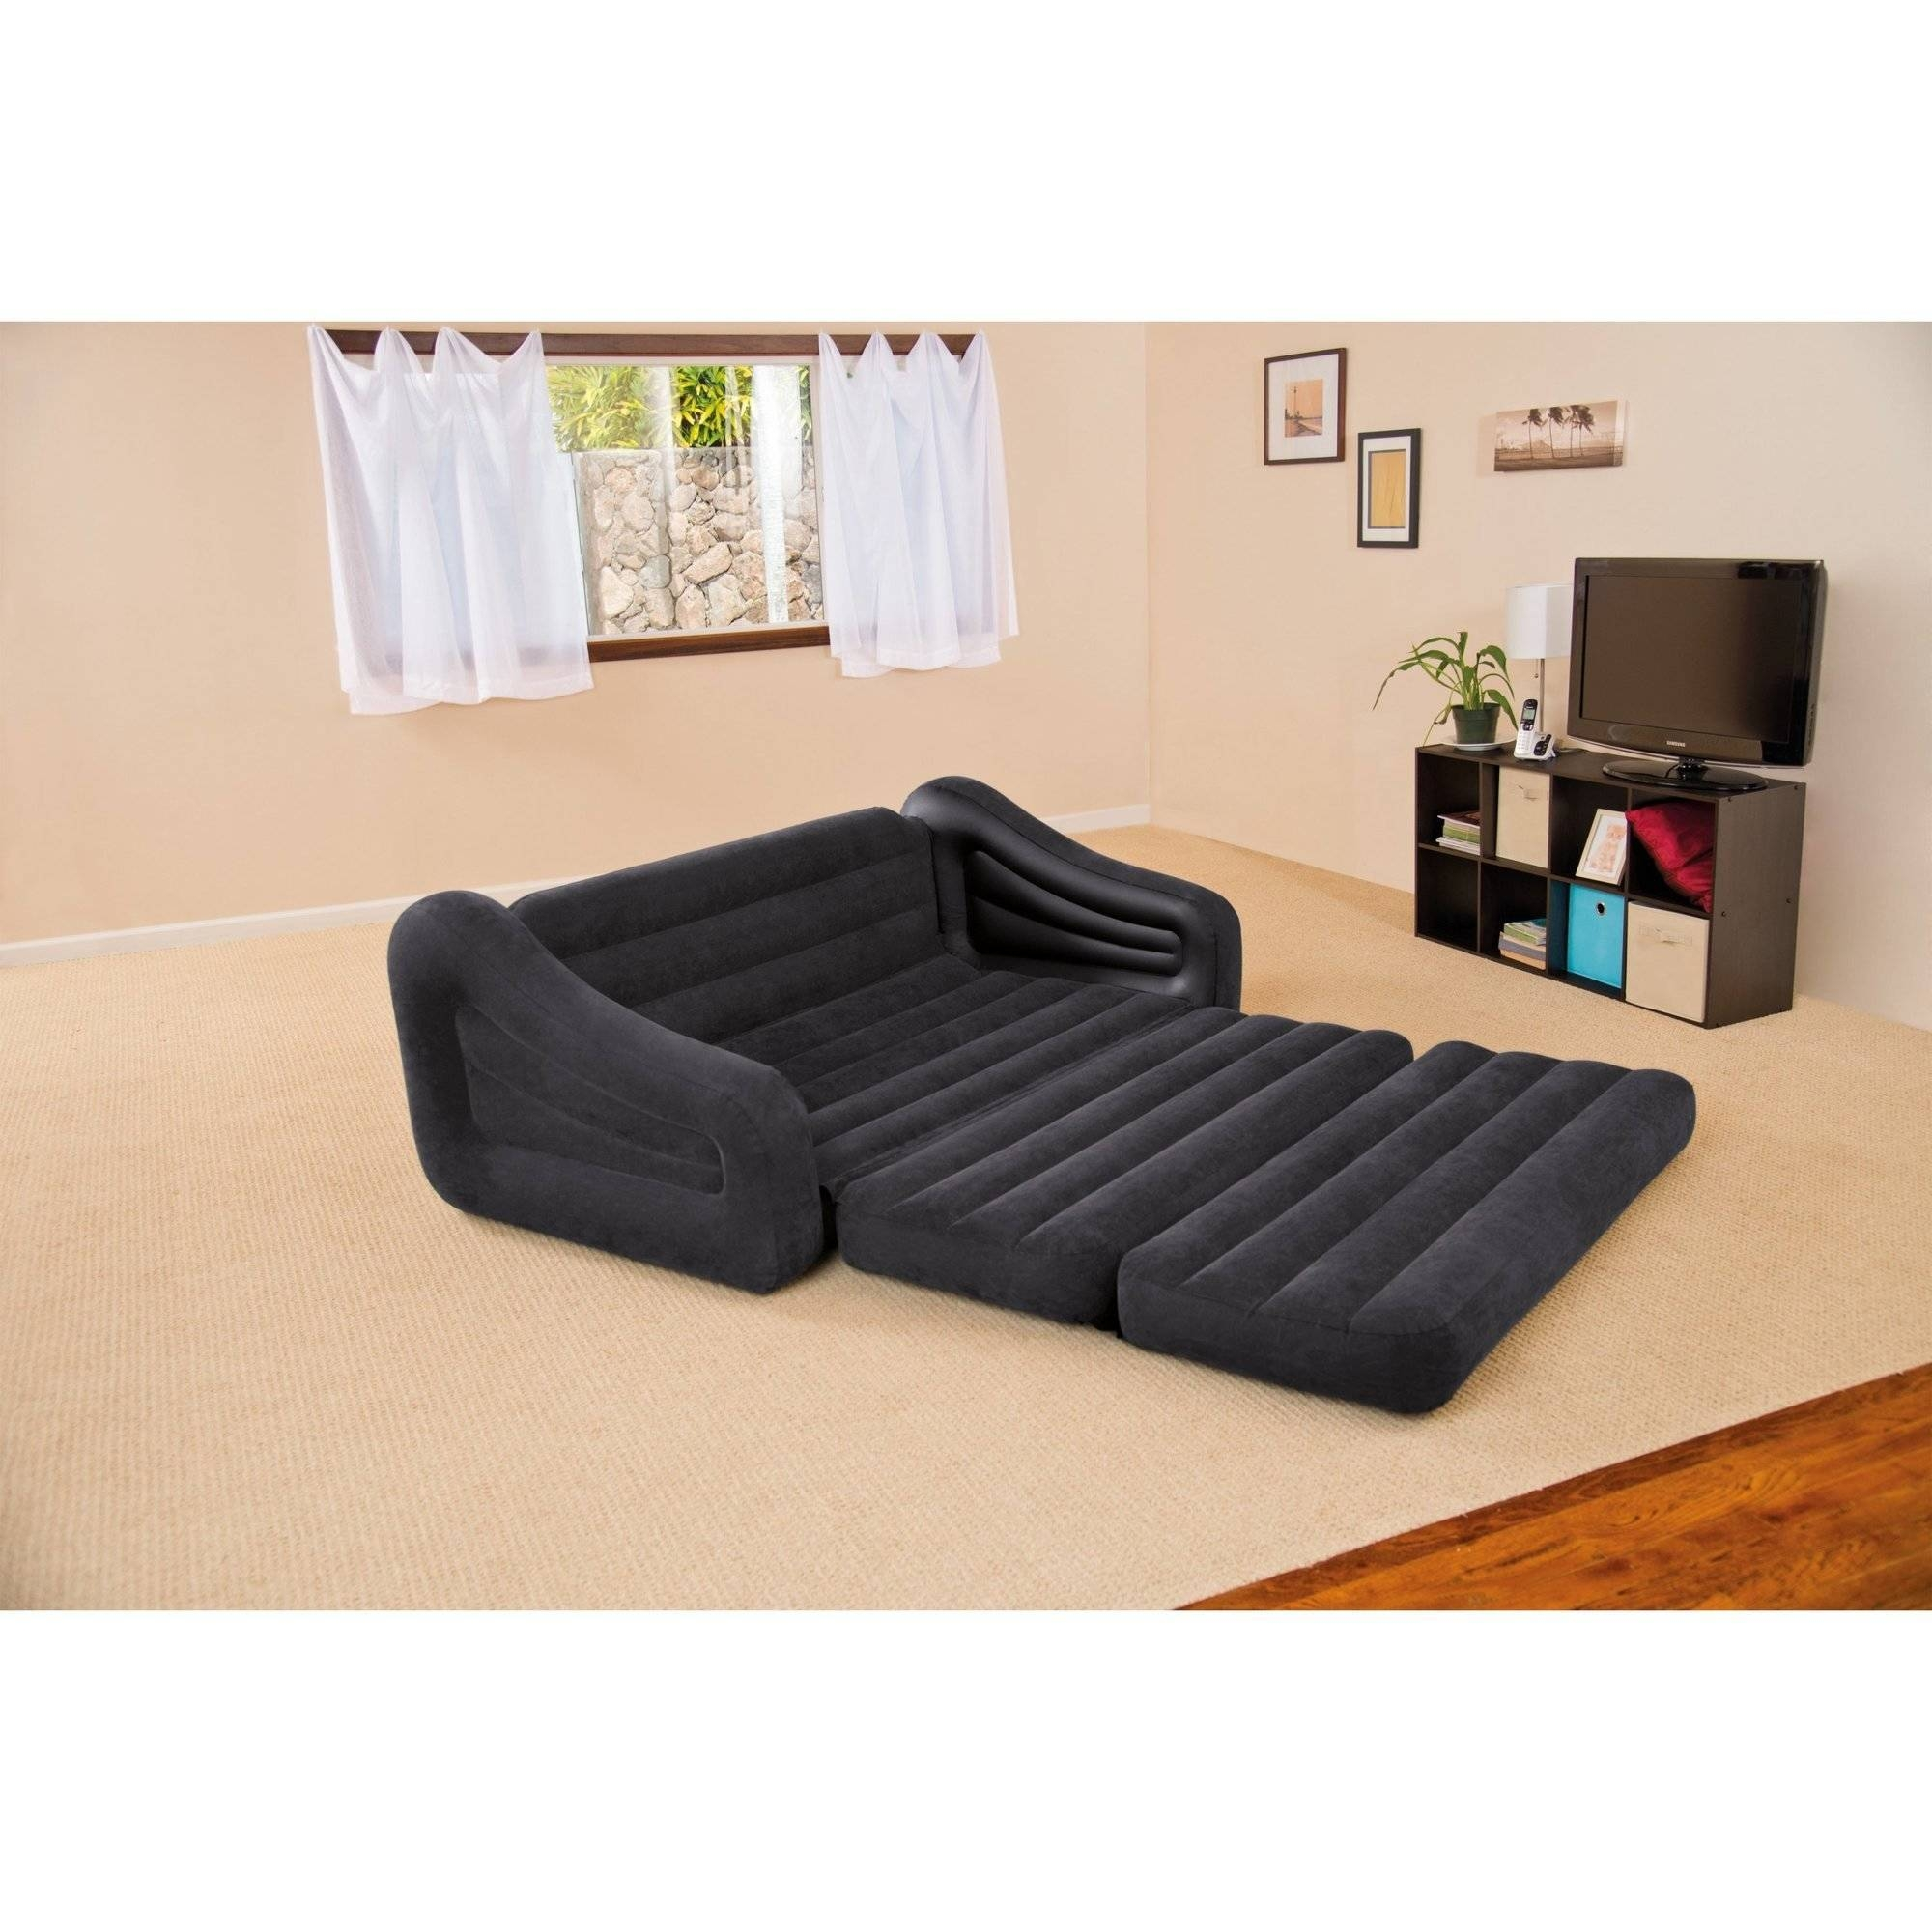 Intex Queen Inflatable Pull Out Sofa Bed - Walmart throughout Pull Out Queen Size Bed Sofas (Image 12 of 30)